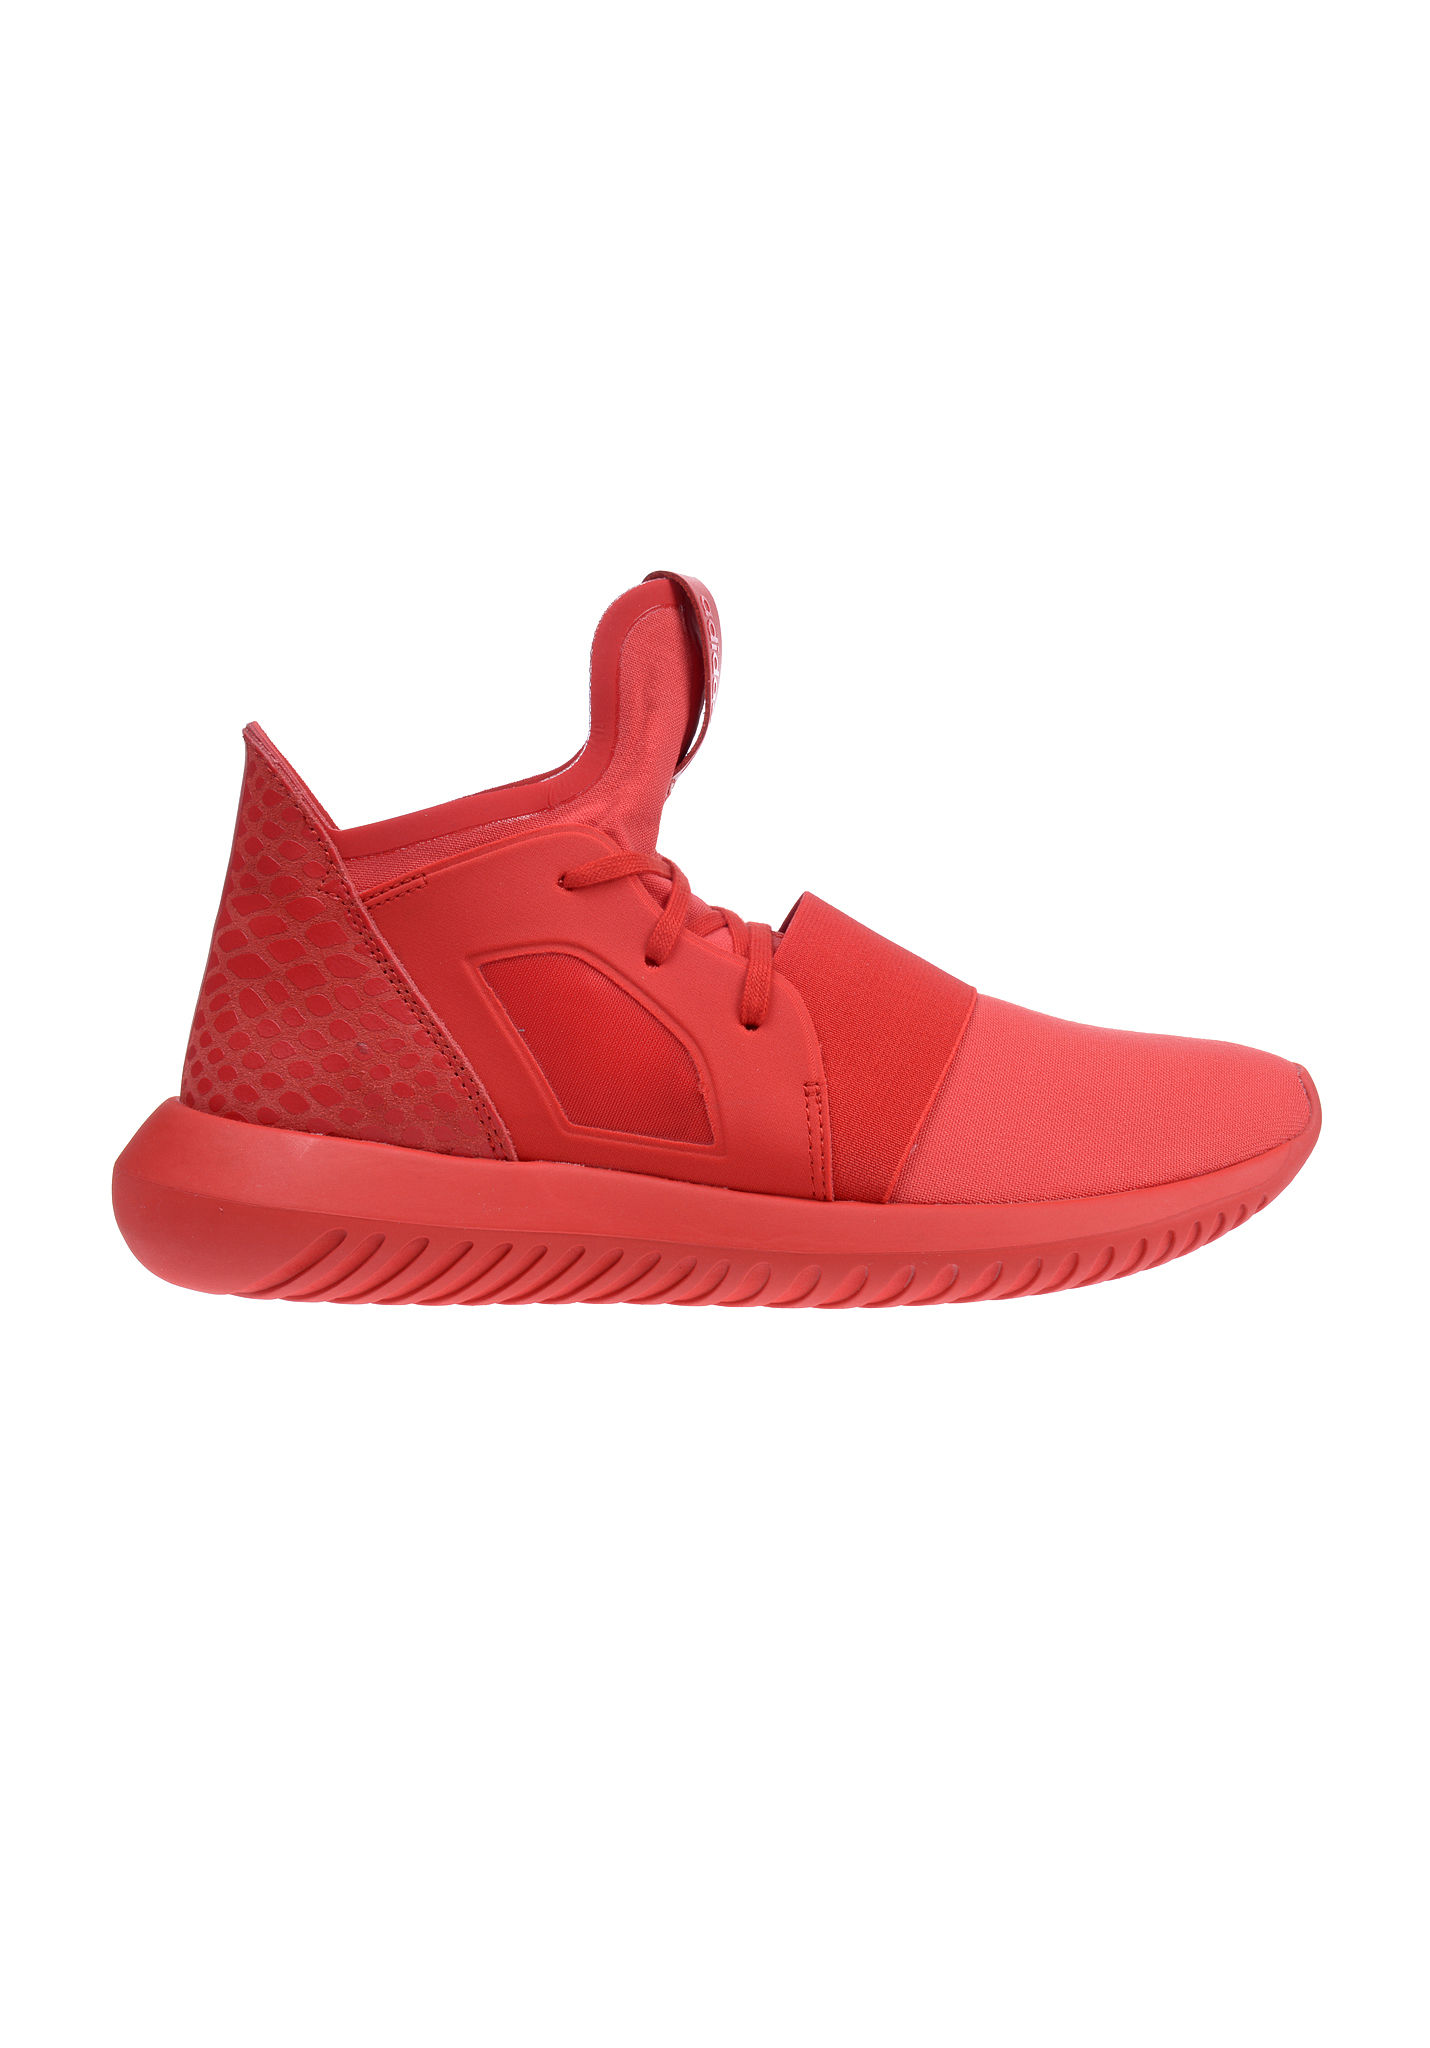 The adidas Tubular X On Sale UNDER Retail! Kicks Under Cost